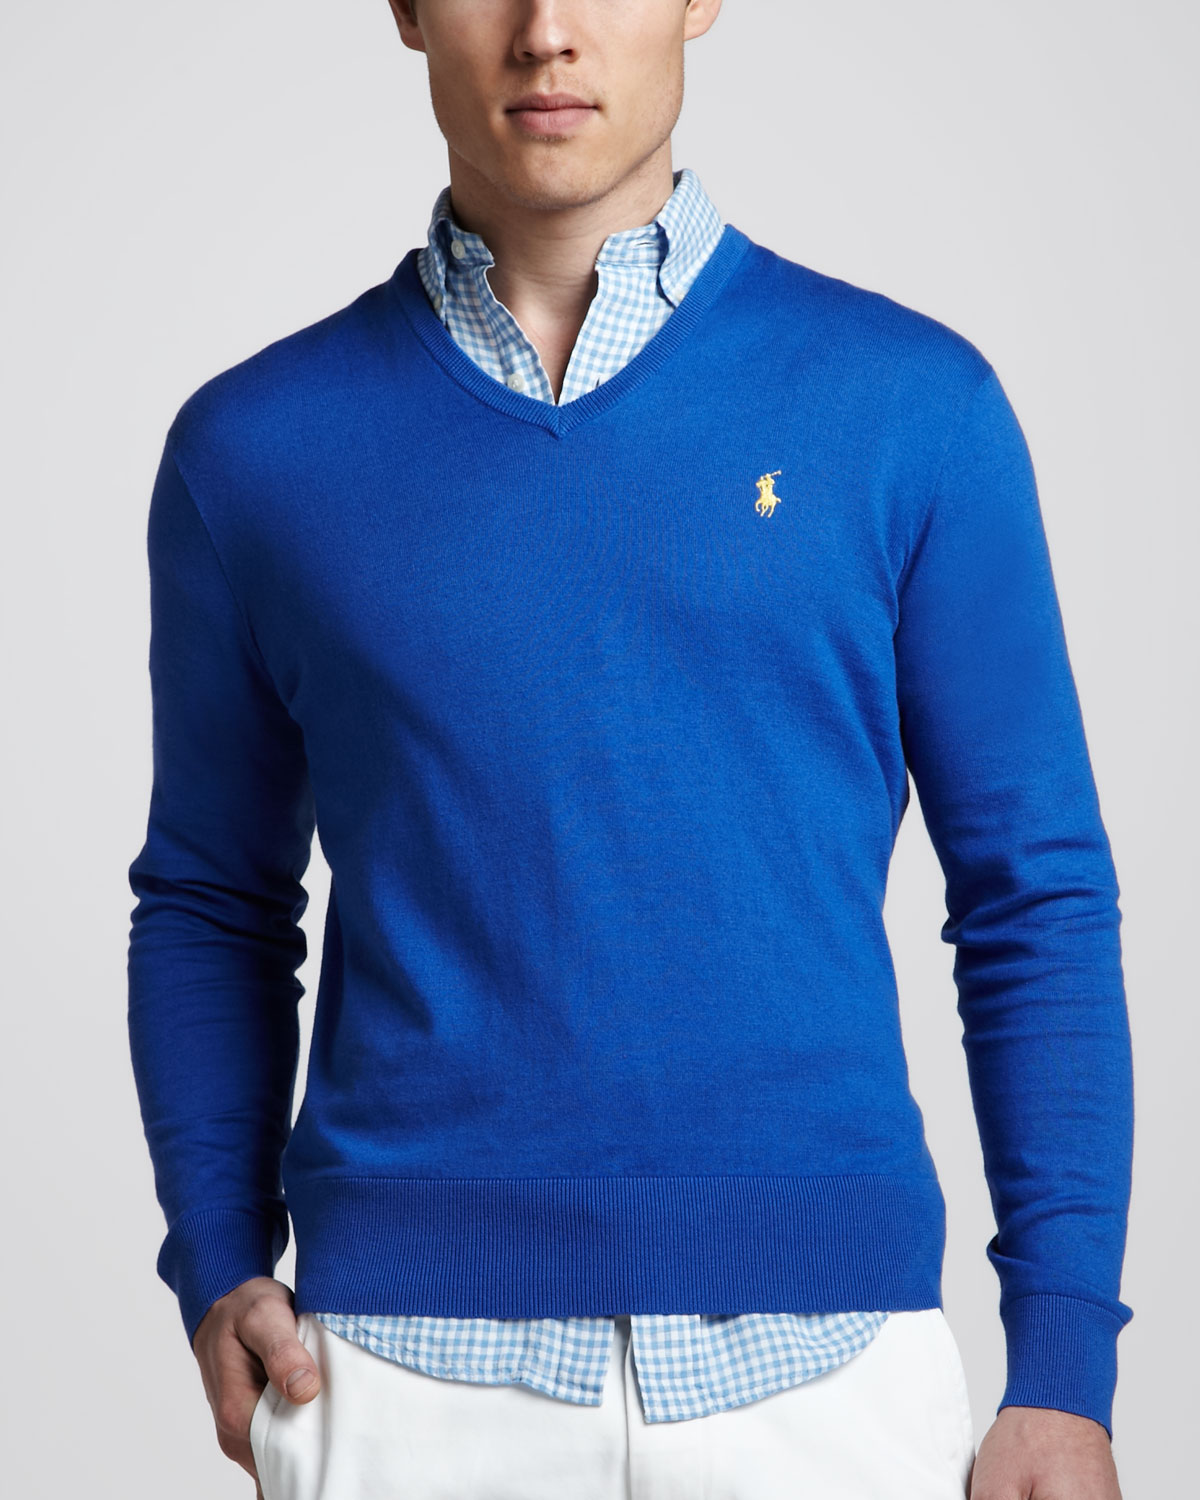 lyst polo ralph lauren vneck cottoncashmere sweater in blue for men. Black Bedroom Furniture Sets. Home Design Ideas